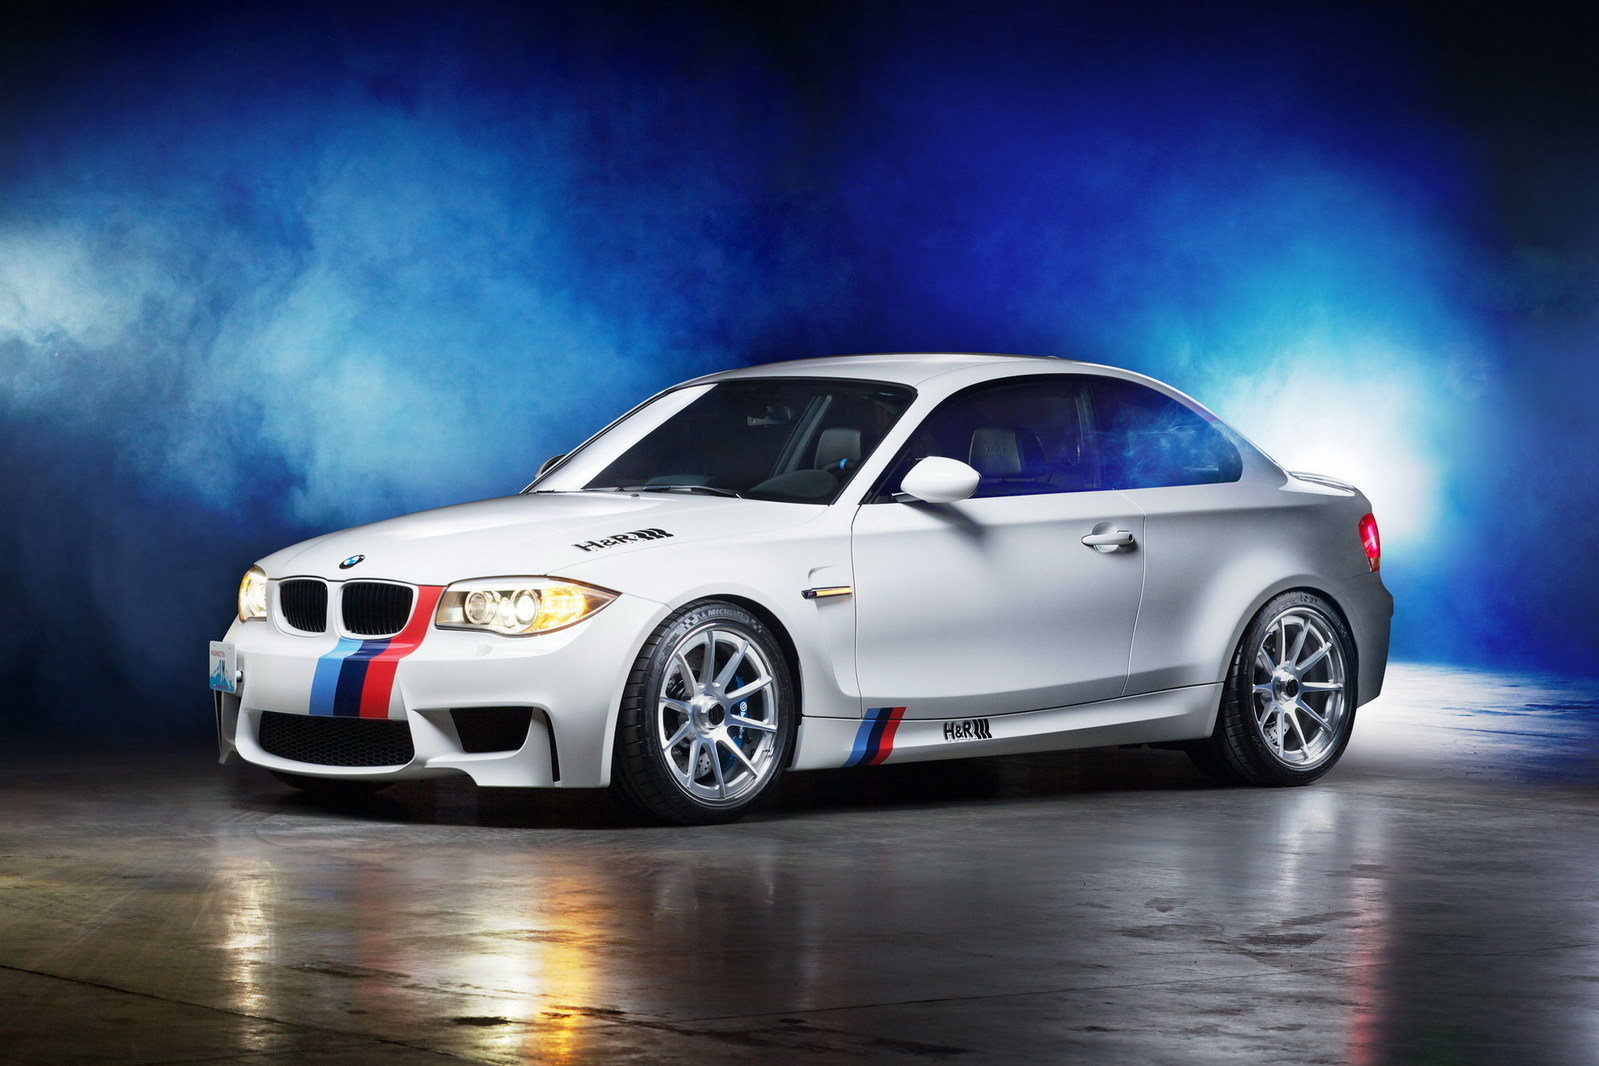 http://pictures.topspeed.com/IMG/crop/201206/free-bmw-1m-poster-f-4_1600x0w.jpg